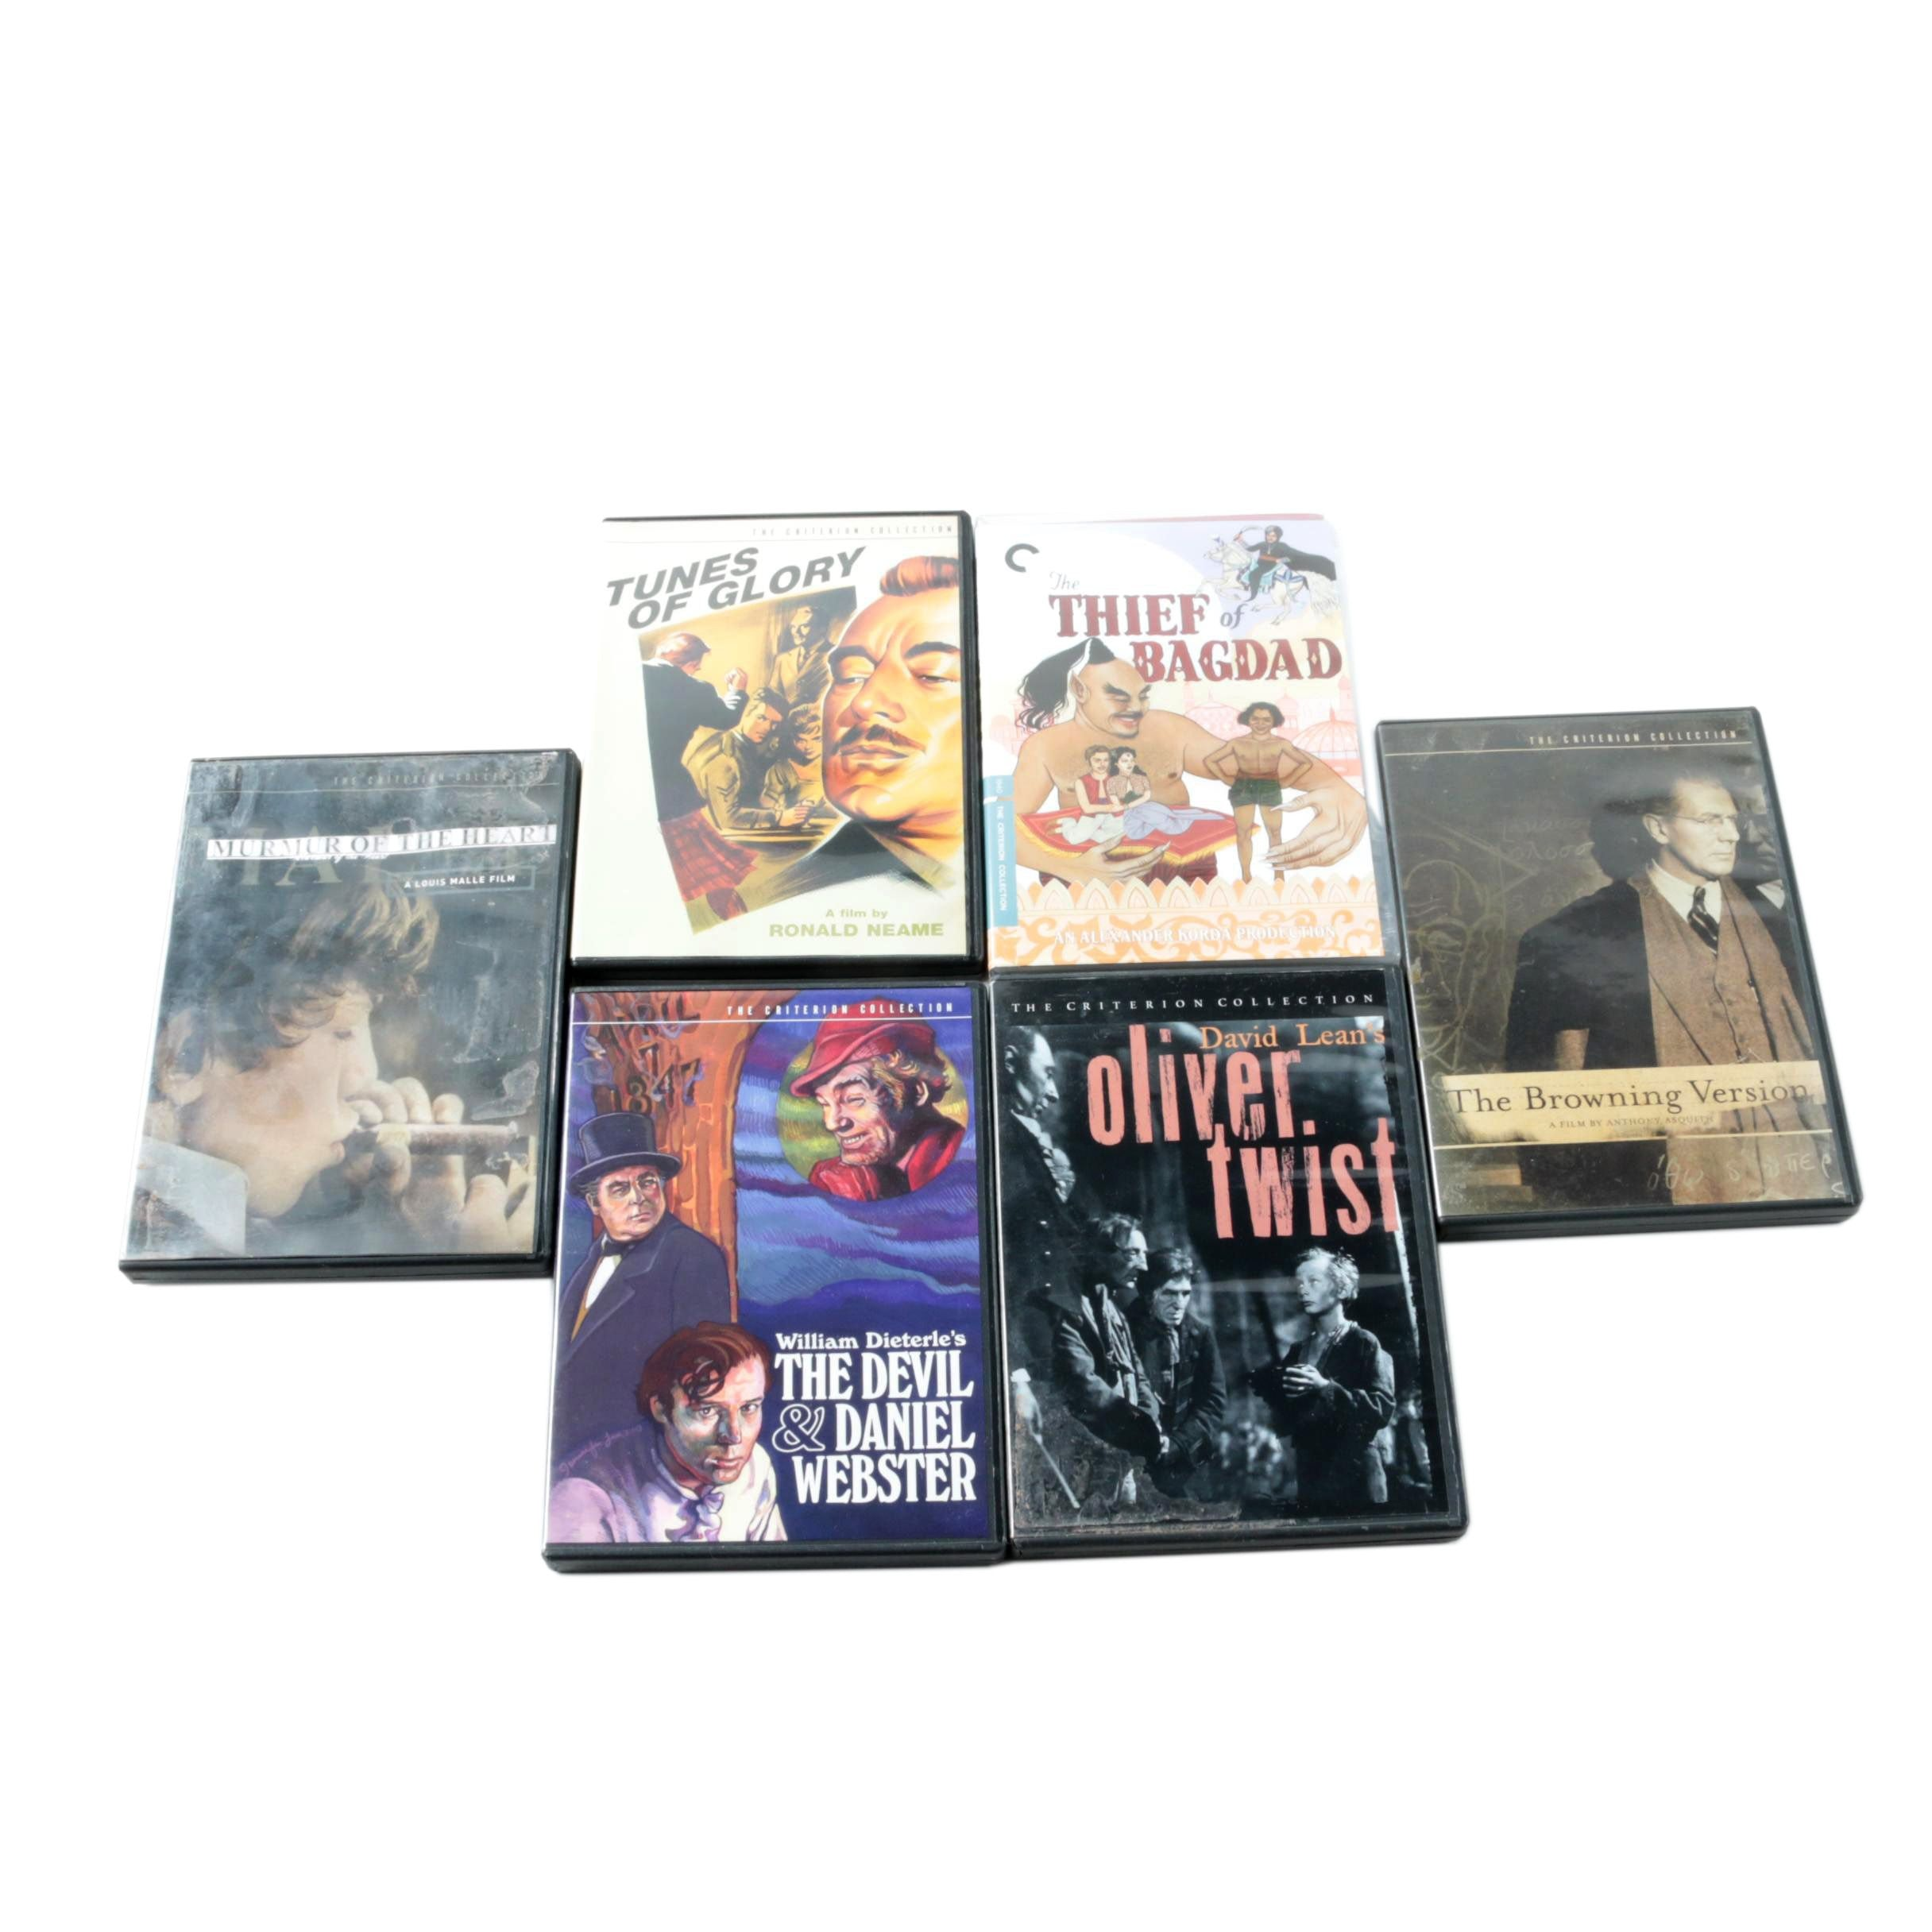 """Criterion Collection Films on DVD Including """"Oliver Twist"""" and """"Thief of Bagdad"""""""